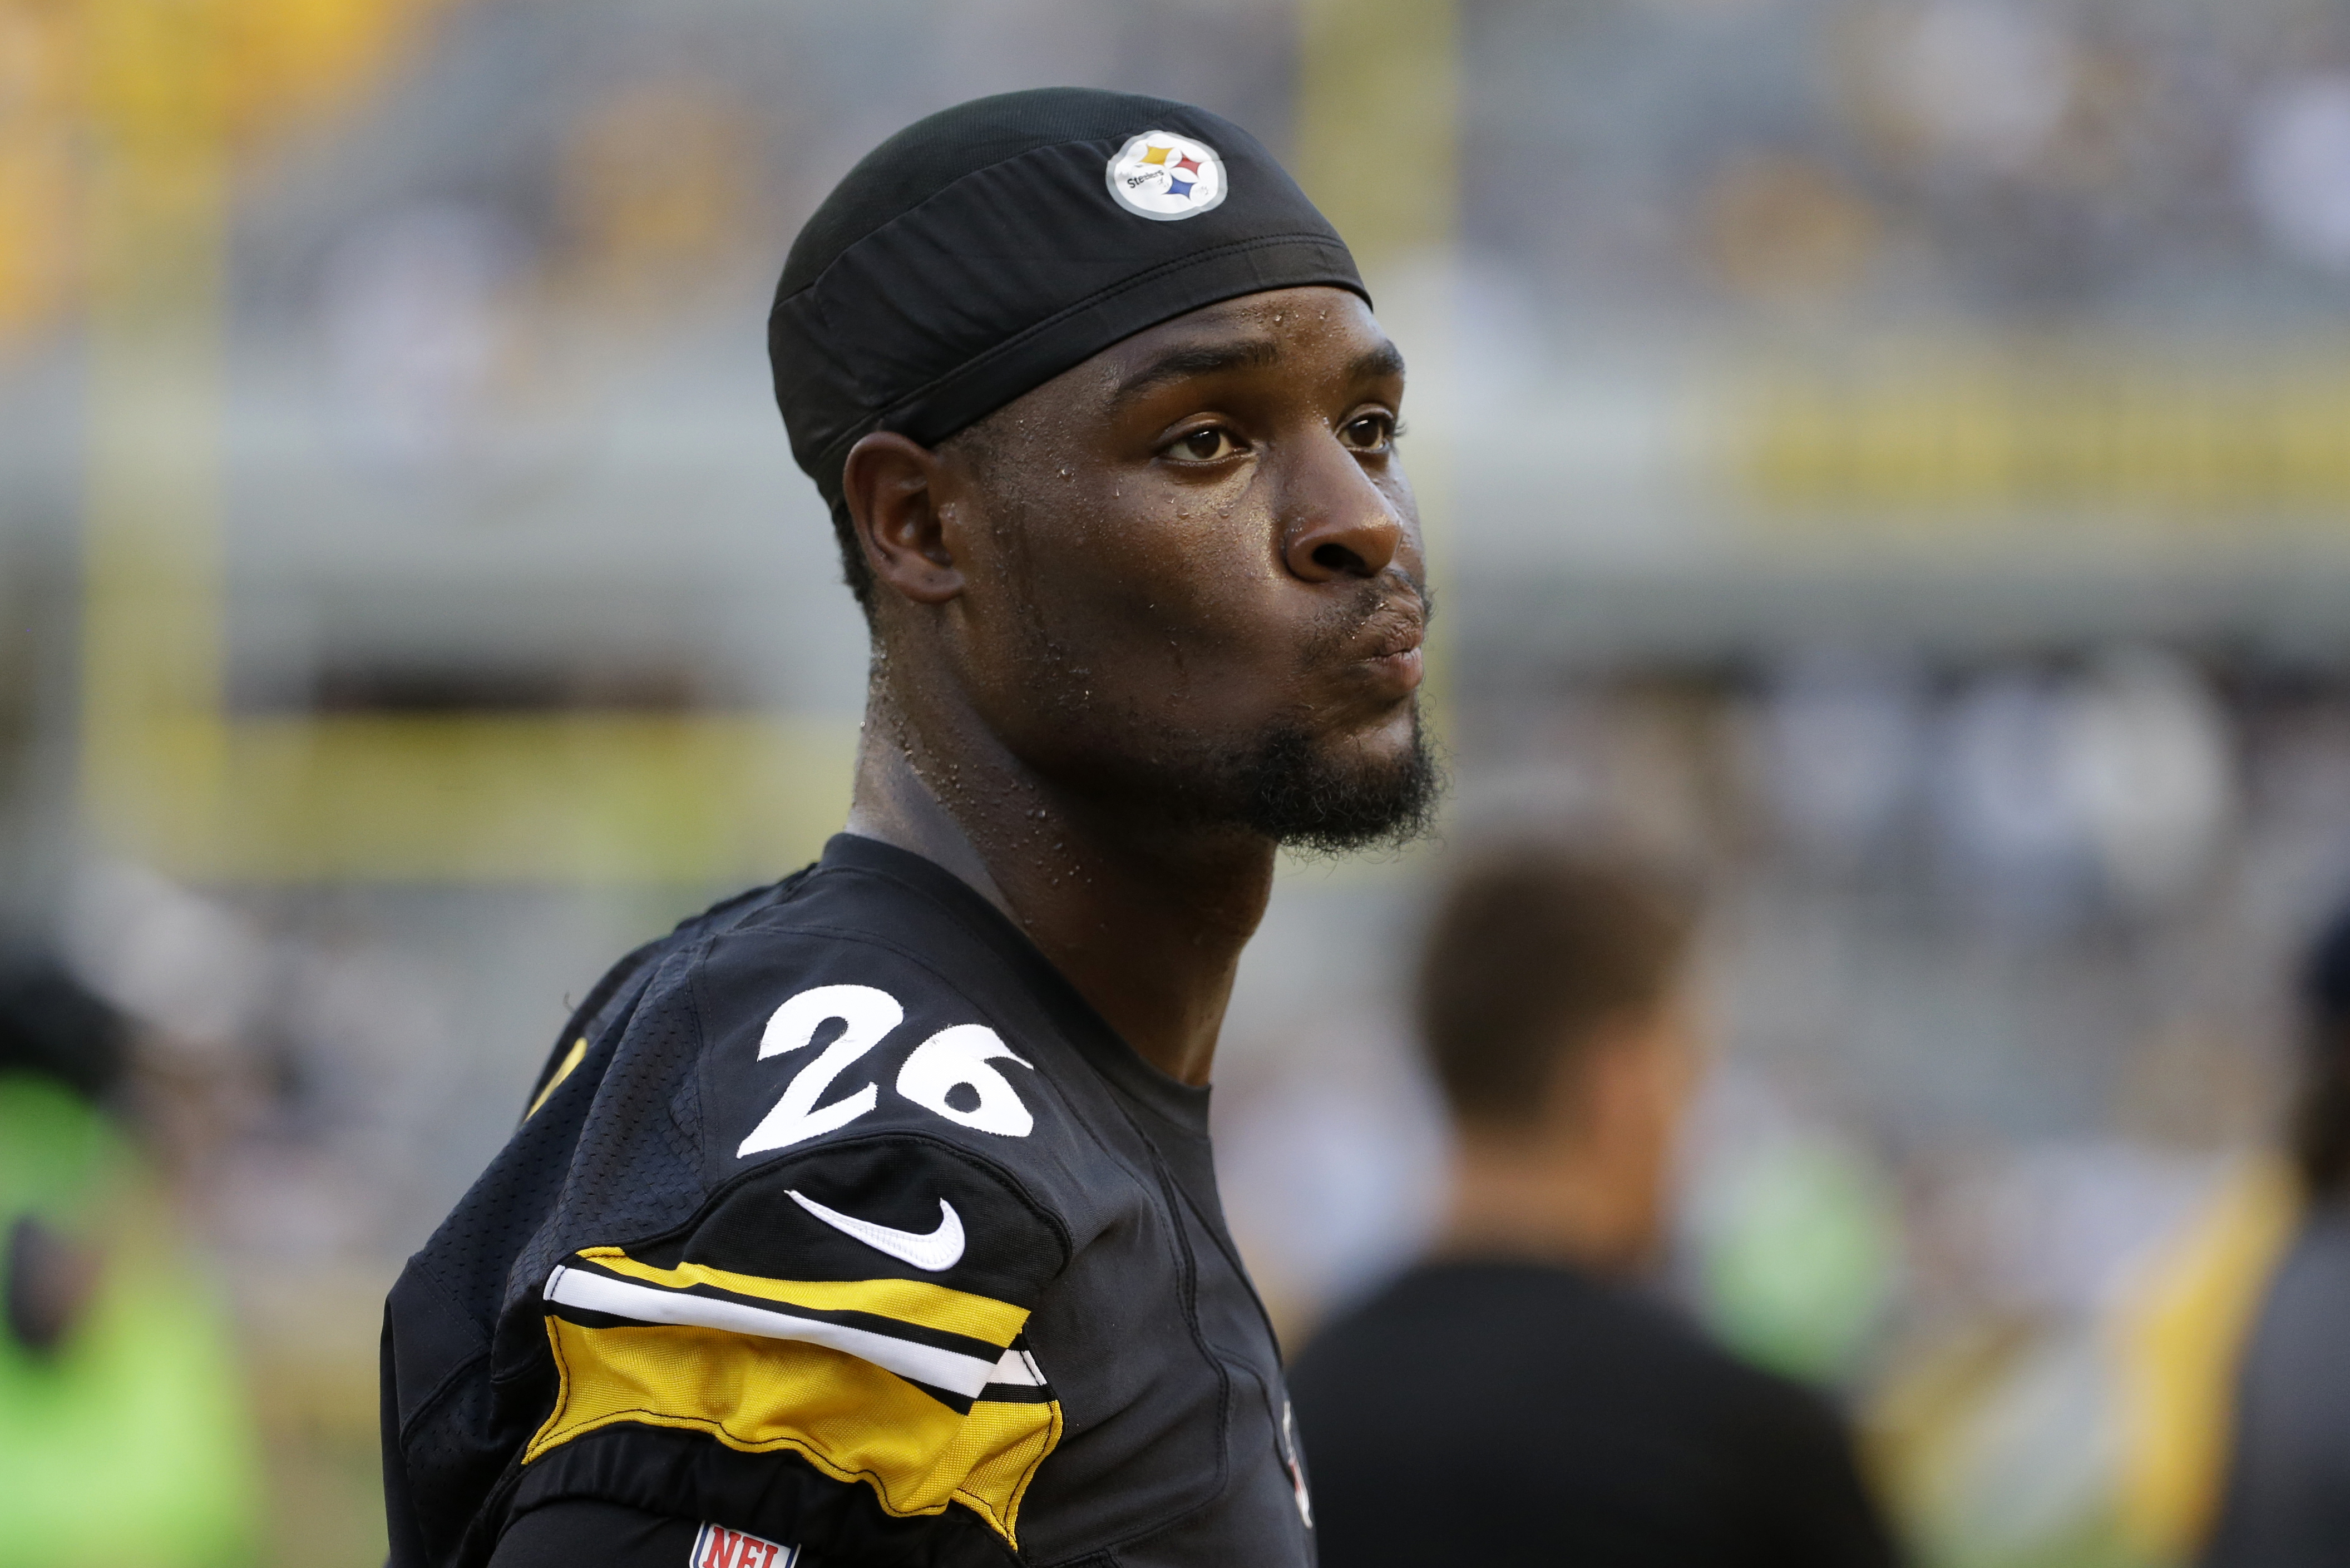 FILE - In this Aug. 12, 2016, file photo, Pittsburgh Steelers running back Le'Veon Bell stands on the sideline during the first half of an NFL exhibition football game against the Detroit Lions in Pittsburgh. Bell is eager to get back to work and put behi